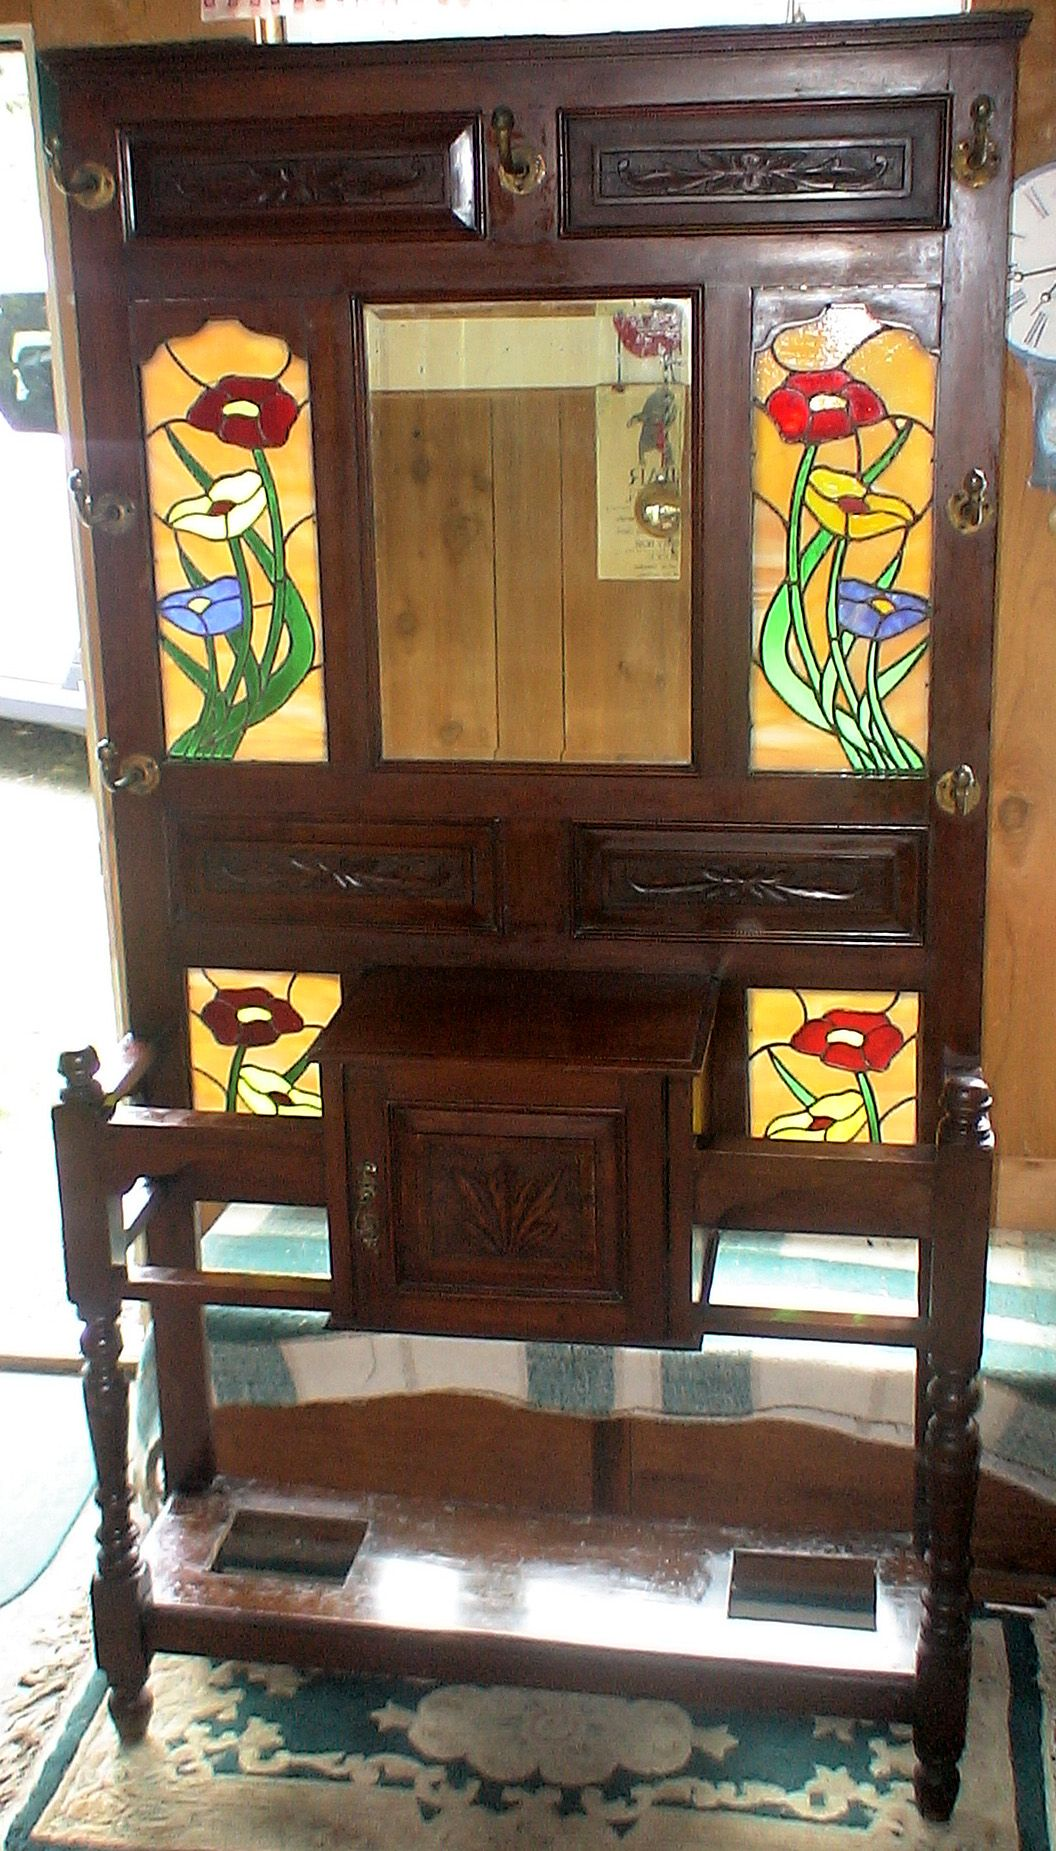 Antique Hall Tree Stained glass windows and Cabinet Early 1900's - Antique Hall Tree Stained Glass Windows And Cabinet Early 1900's